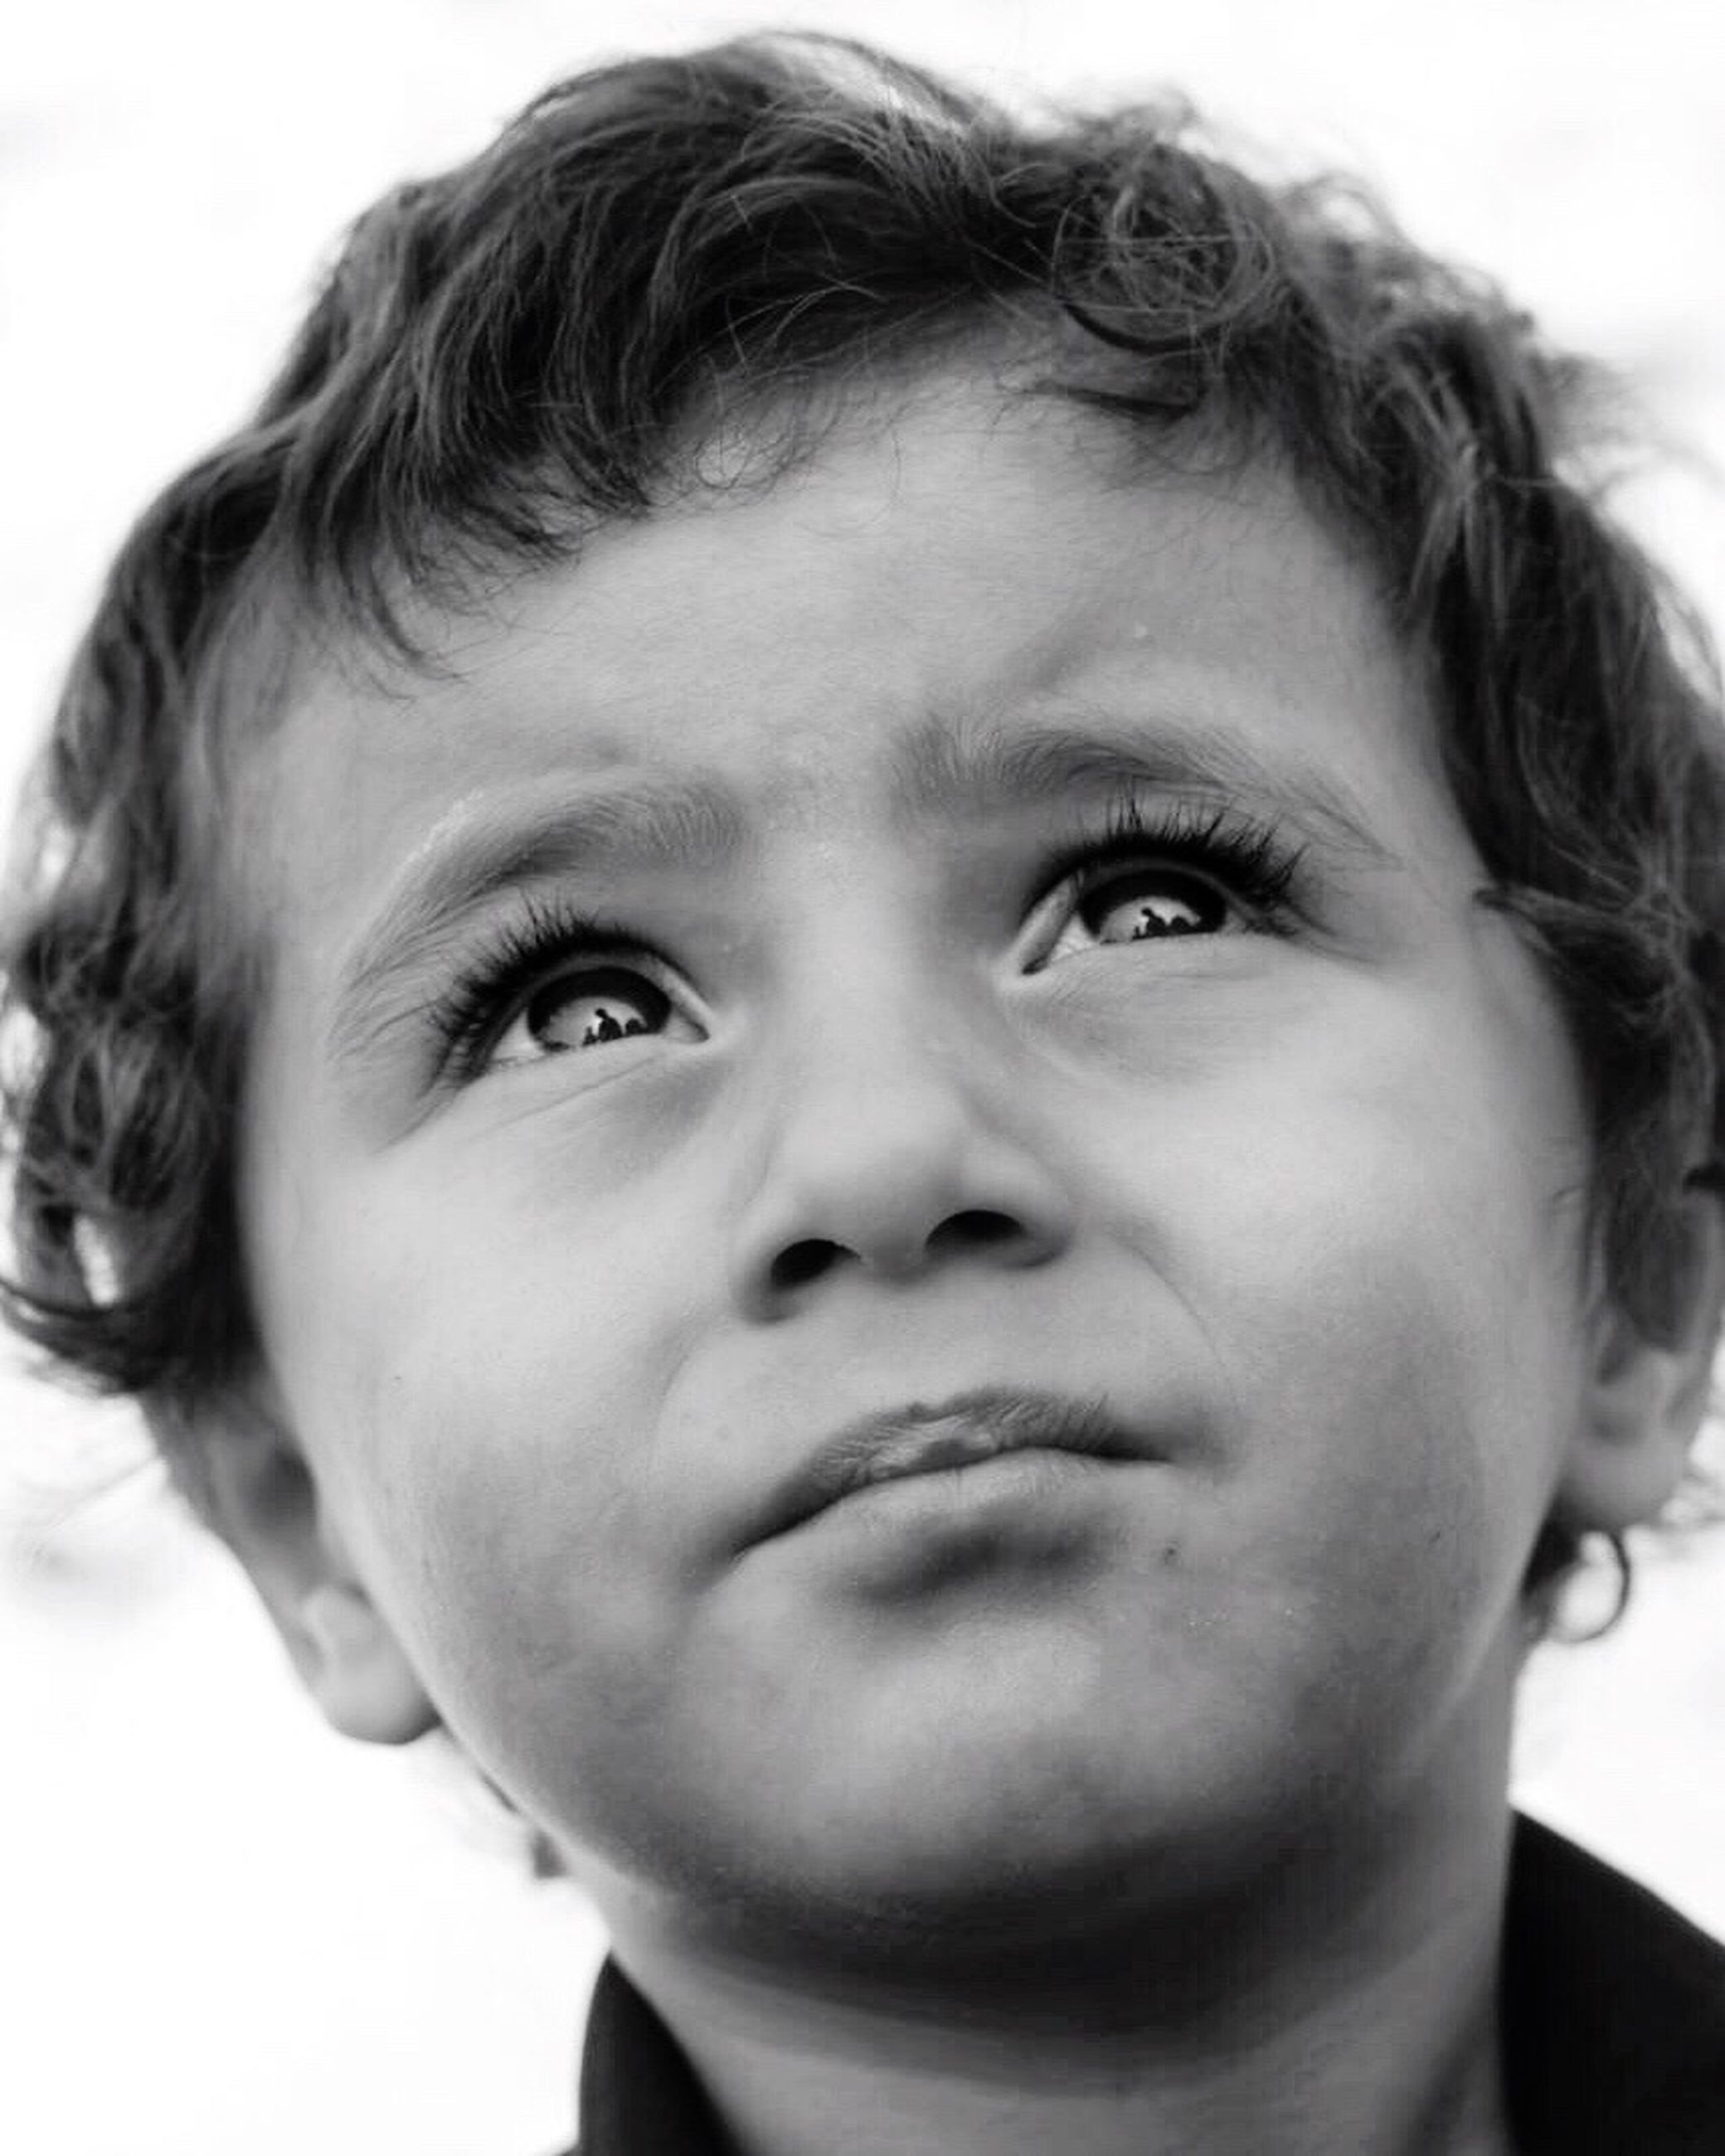 childhood, looking at camera, portrait, human face, child, one person, white background, close-up, front view, real people, headshot, human body part, children only, people, human eye, day, outdoors